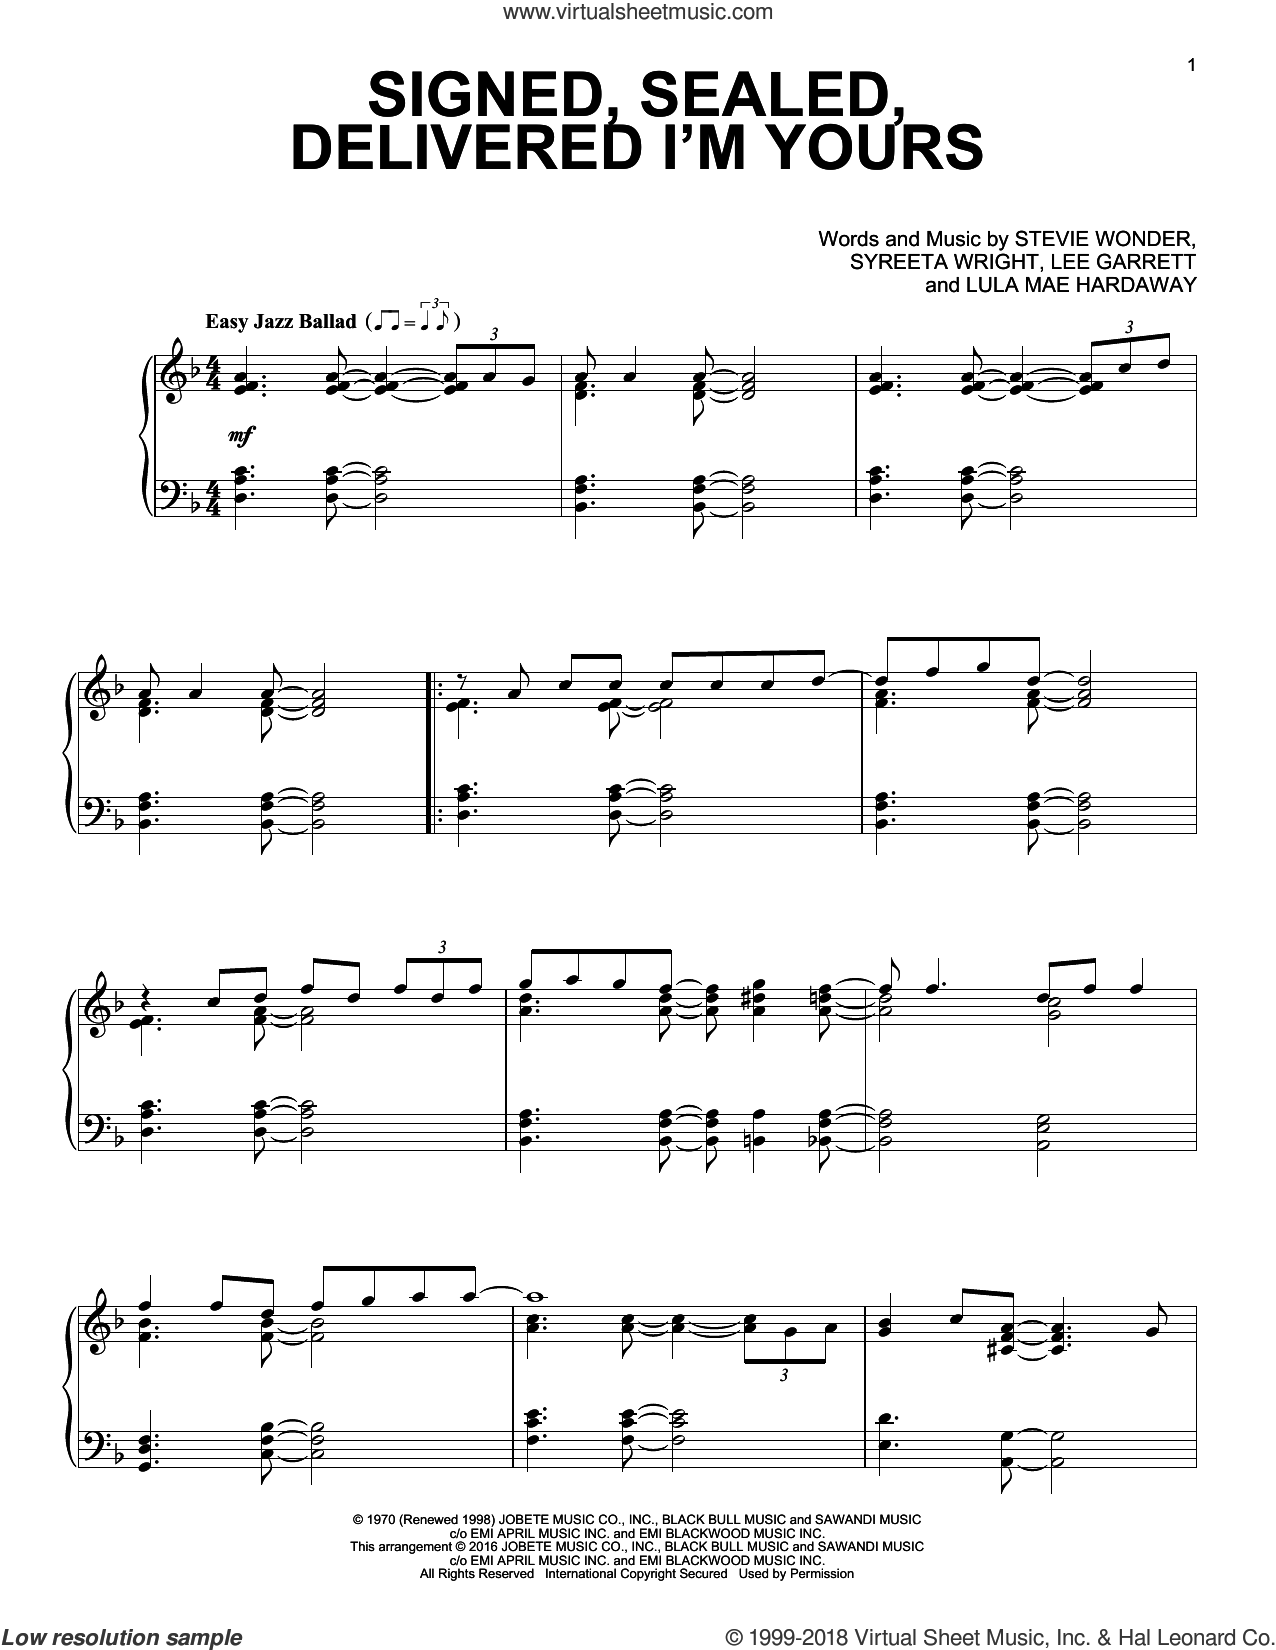 Signed, Sealed, Delivered I'm Yours sheet music for piano solo by Stevie Wonder, Lee Garrett, Lula Mae Hardaway and Syreeta Wright, intermediate skill level